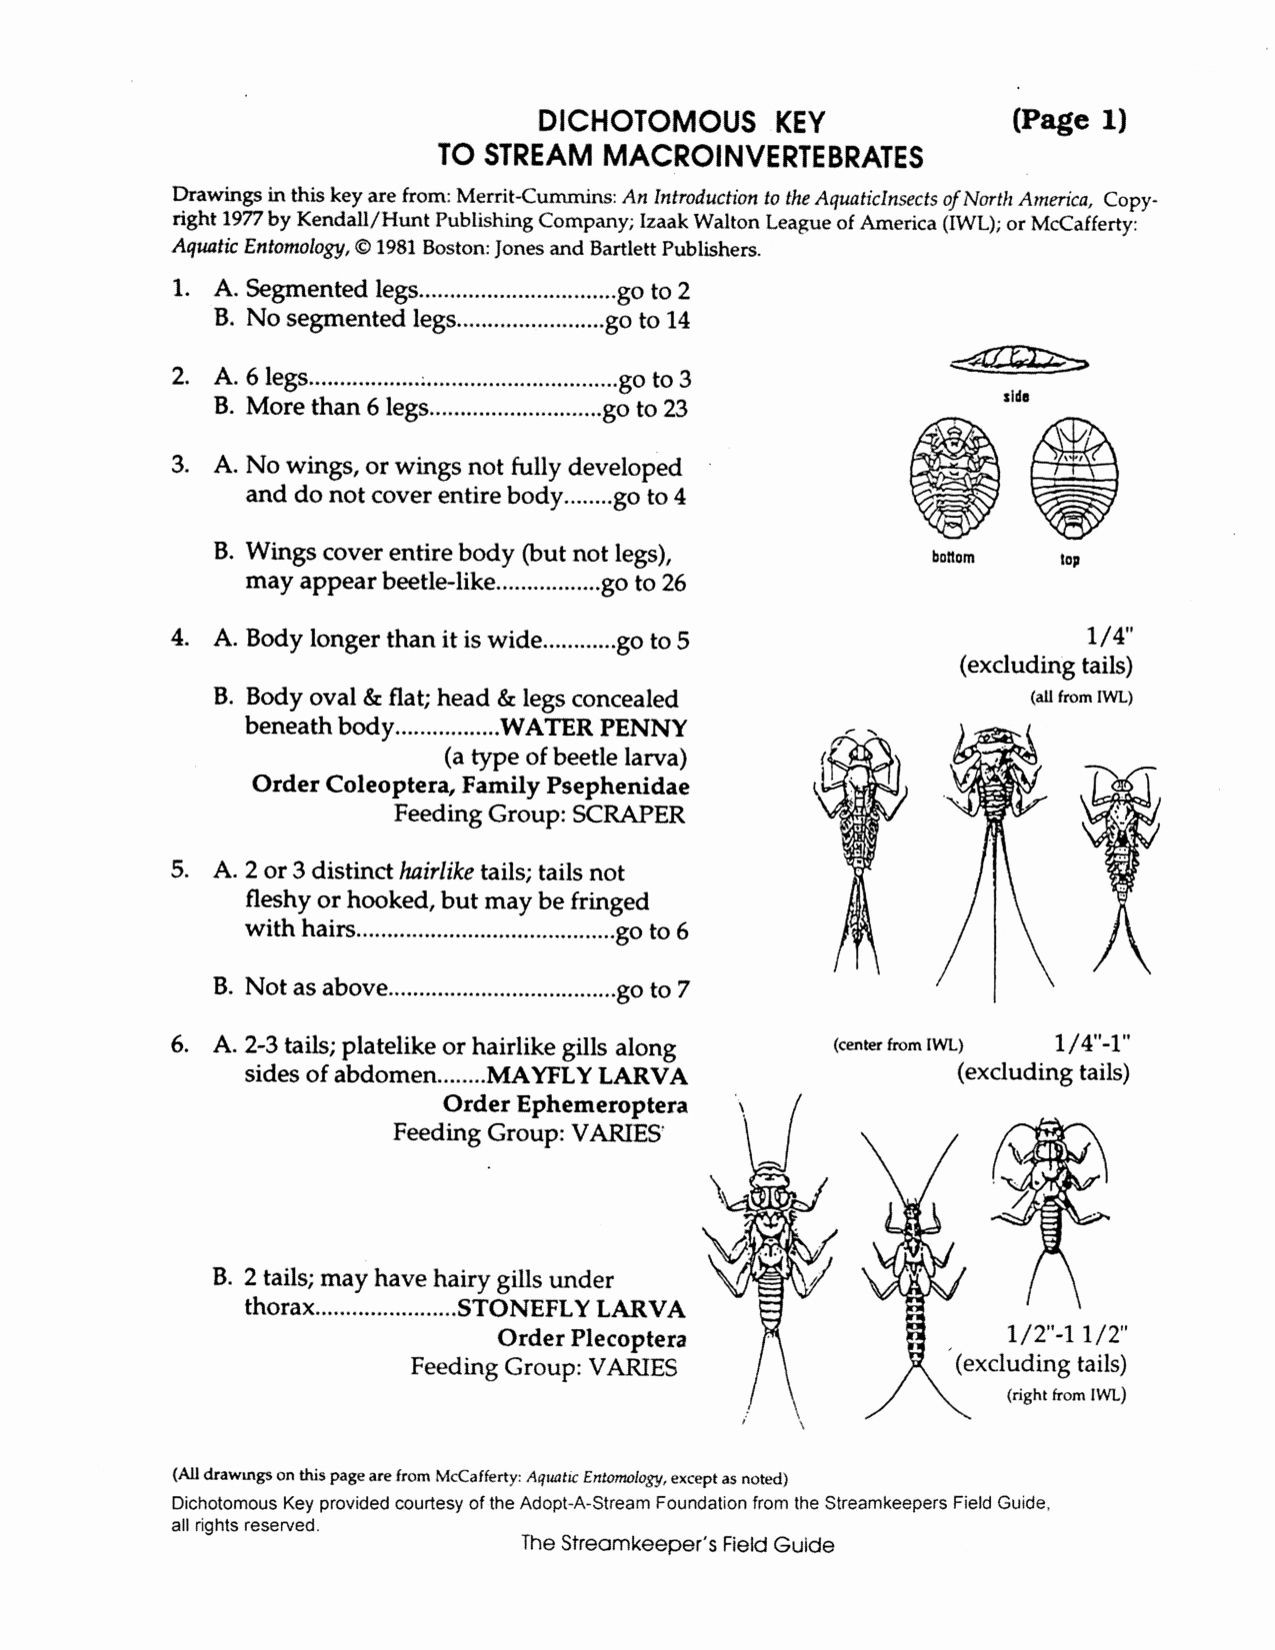 Dichotomous Key Worksheets Middle School 50 Dichotomous Key Worksheet Middle School In 2020